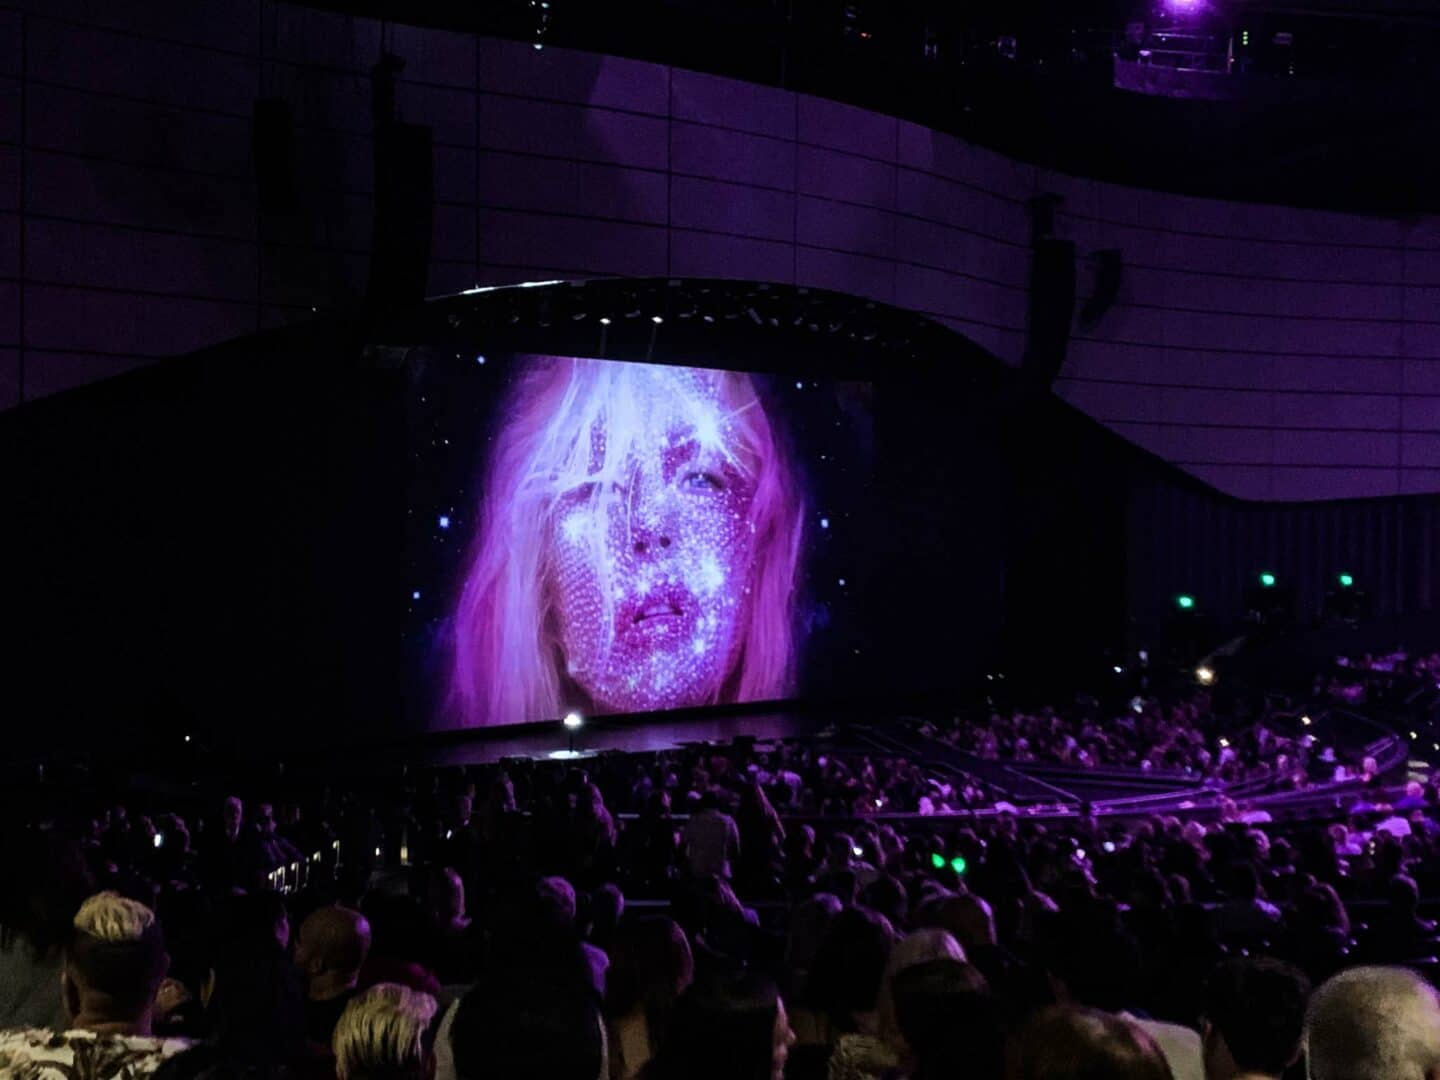 Attending a concert by Christina Aguilera in the Planet Hollywood Hotel.